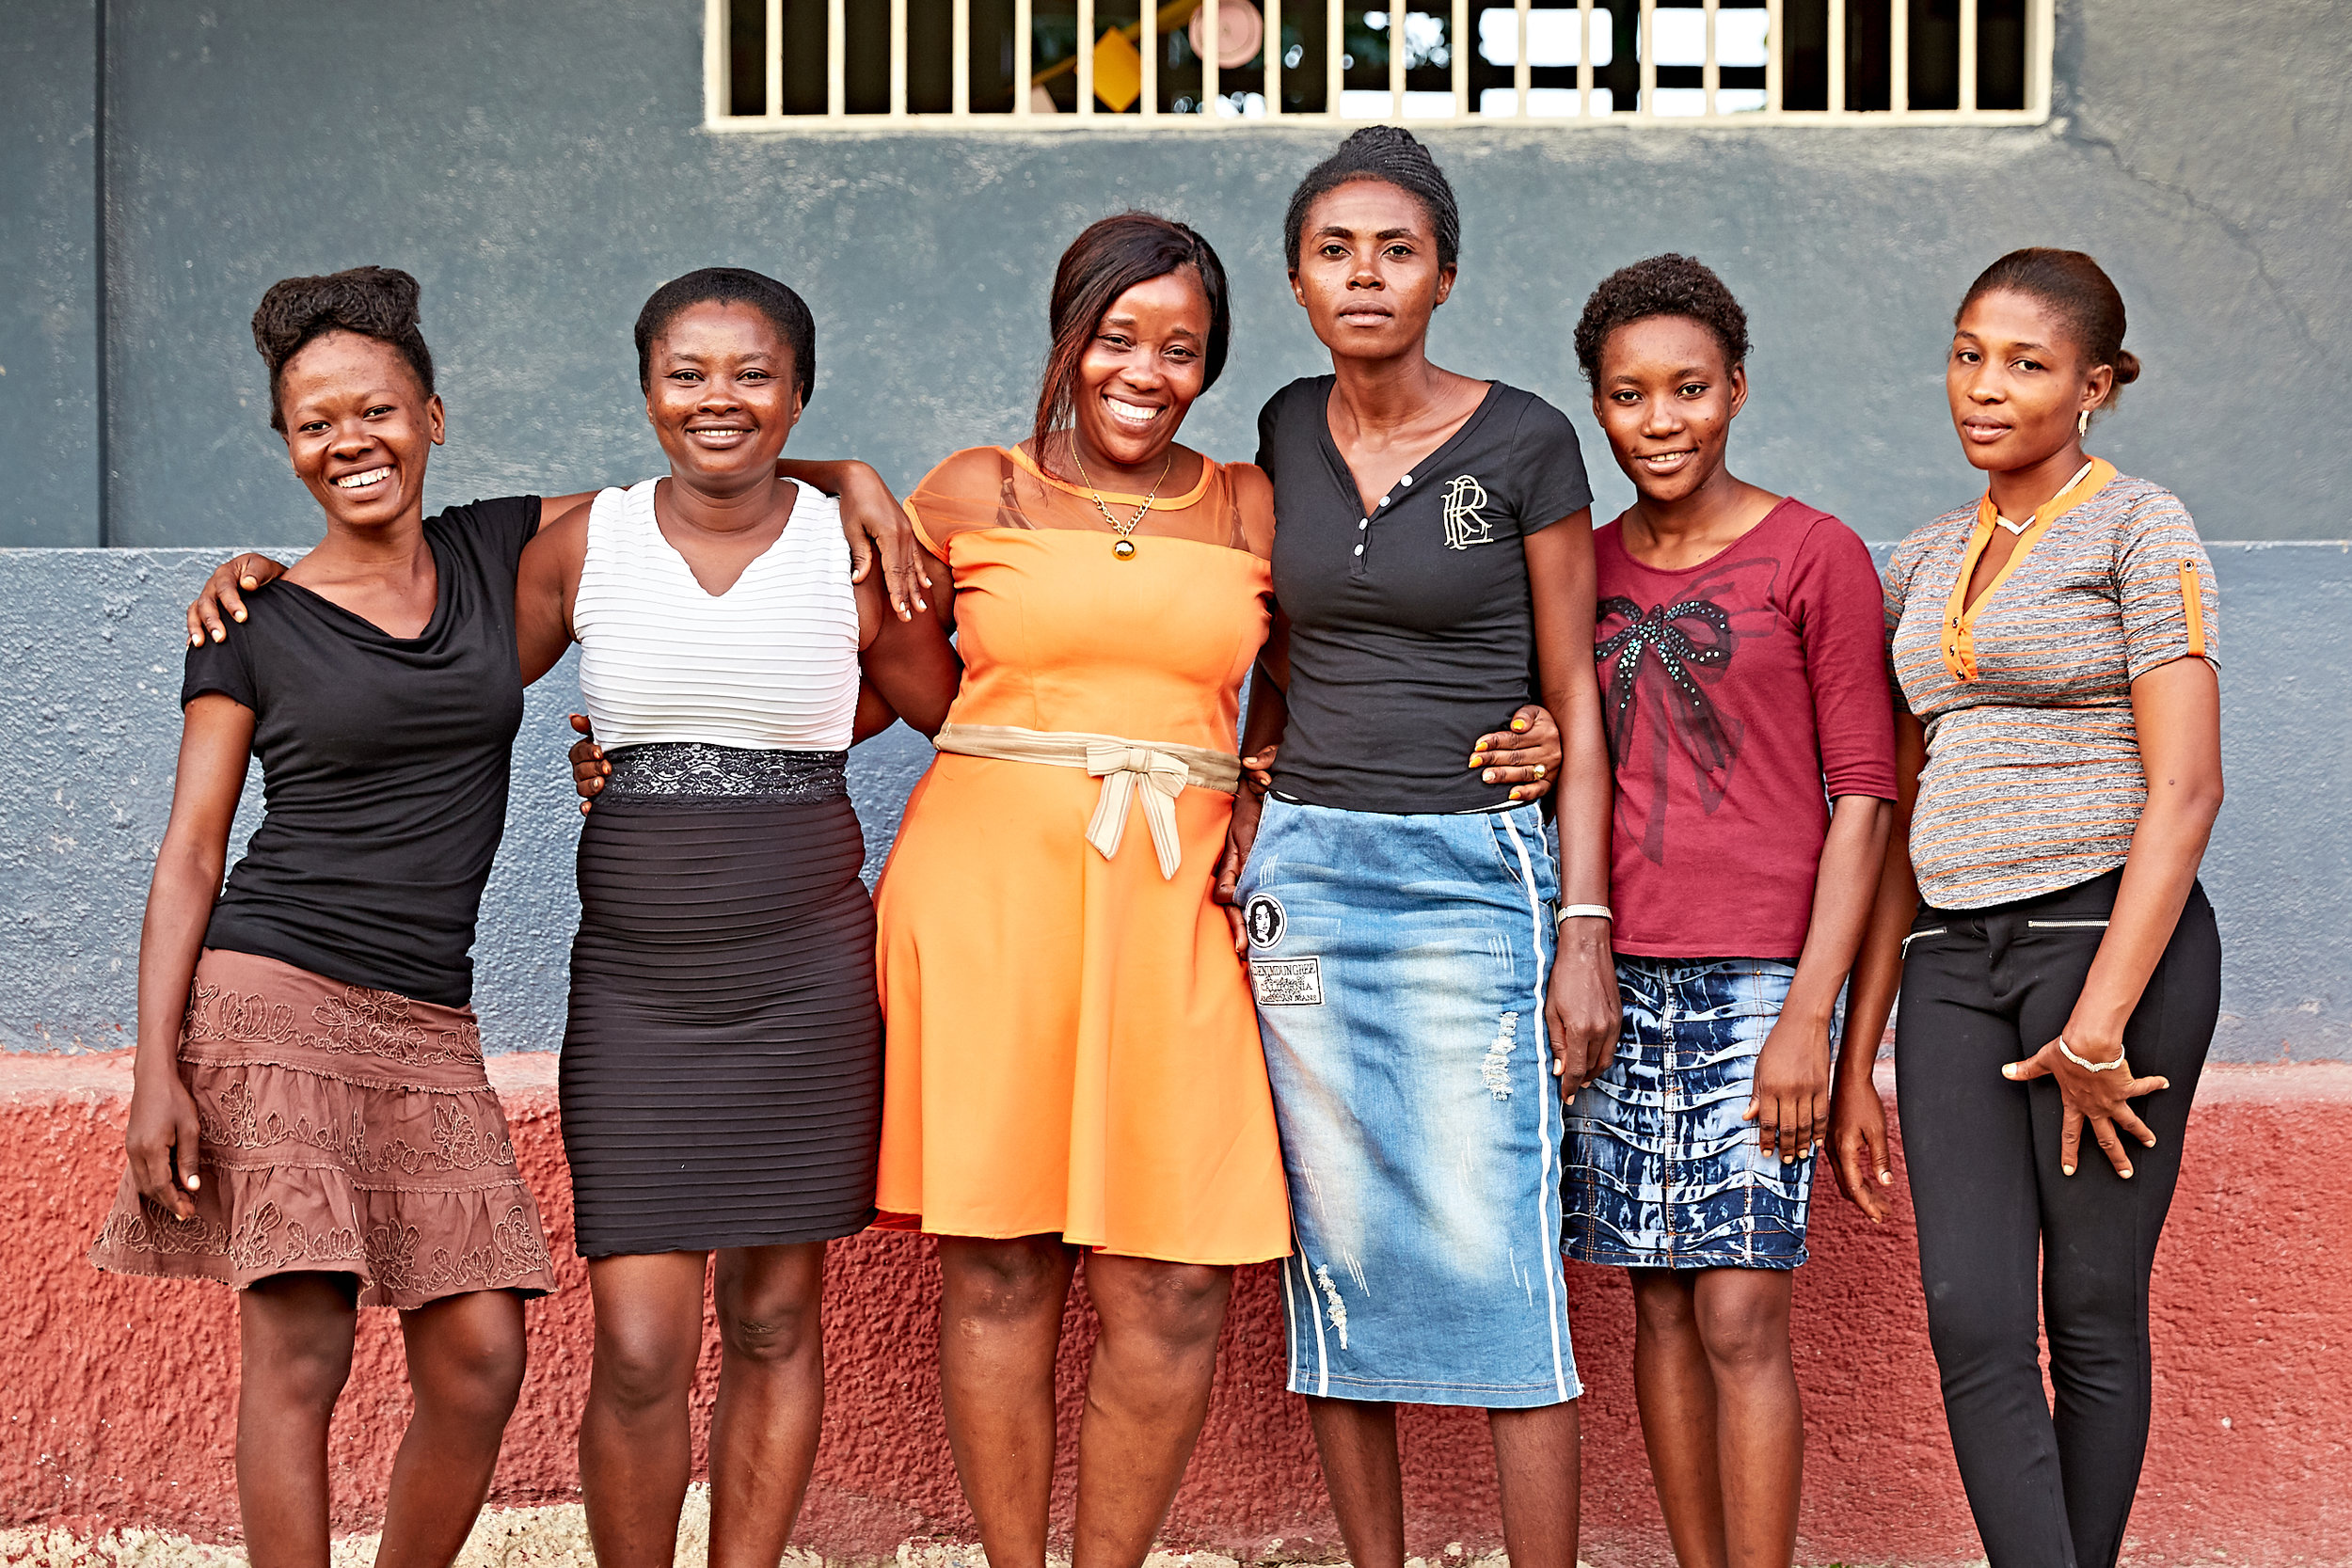 Pictured above (left to right): Francoise, Elmina, Natalya, Nadine, Micheline, and Darline